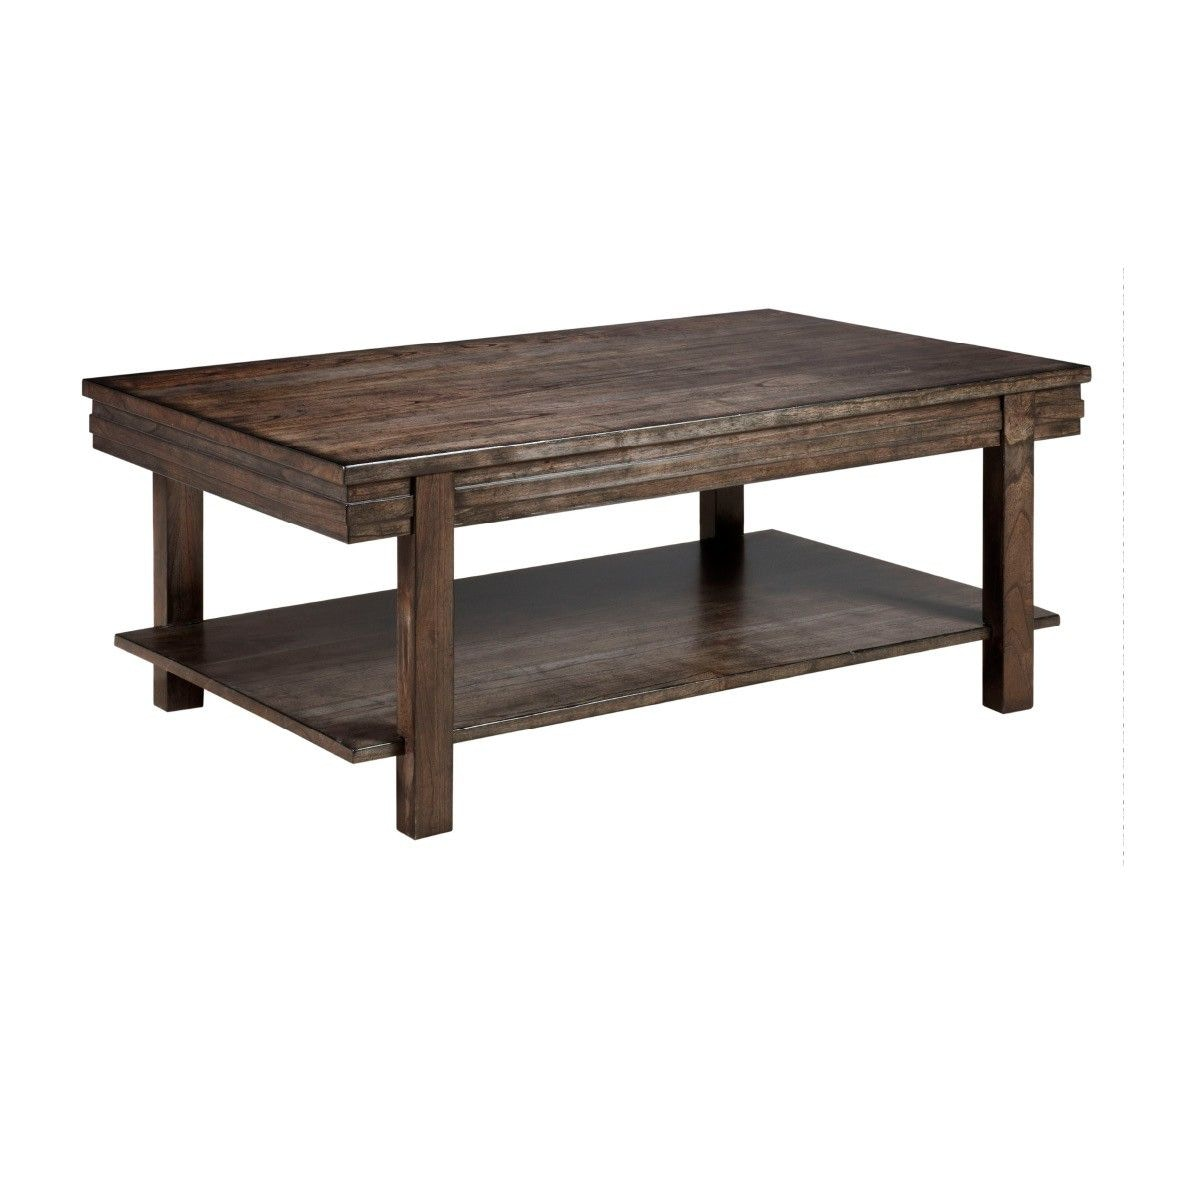 Montreat Coffee Table ST:410612